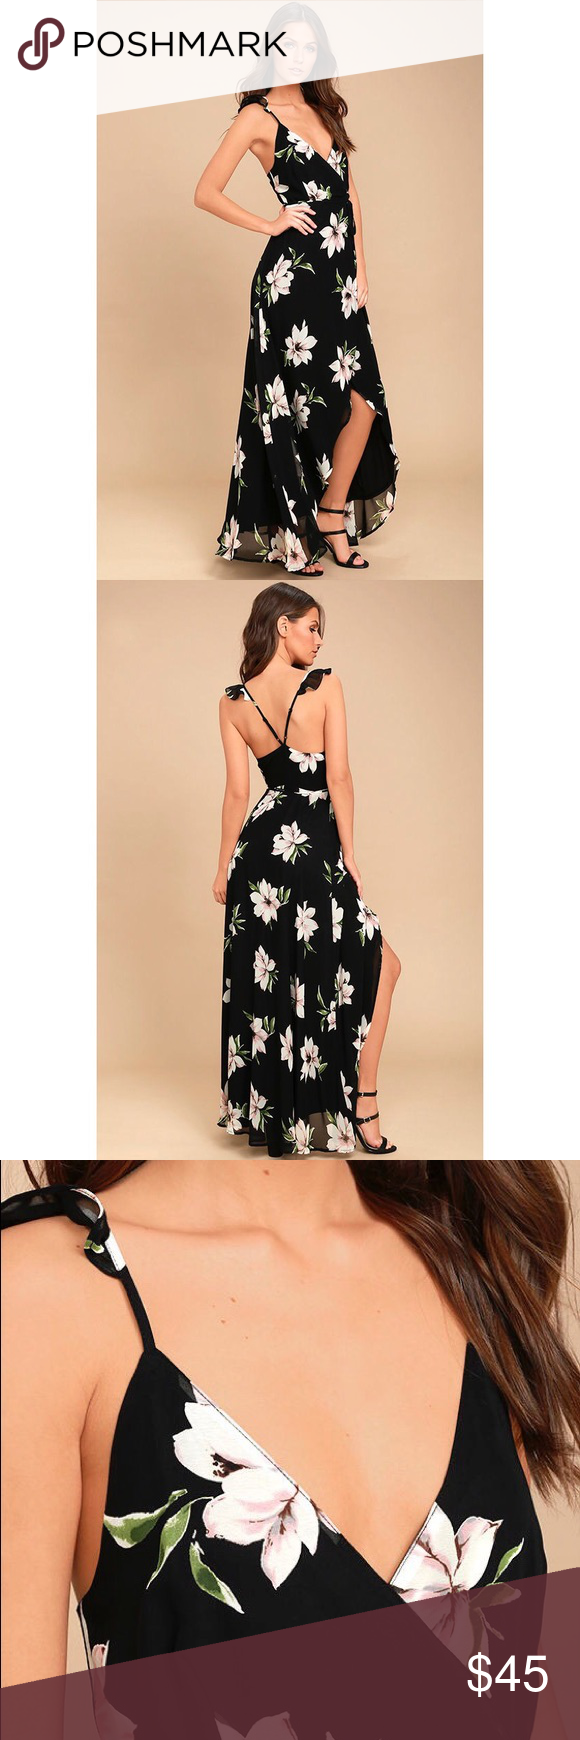 b3abd017d7 Lulu s All Mine Black Floral Print Wrap Dress Lulus Exclusive! You ll find  everything